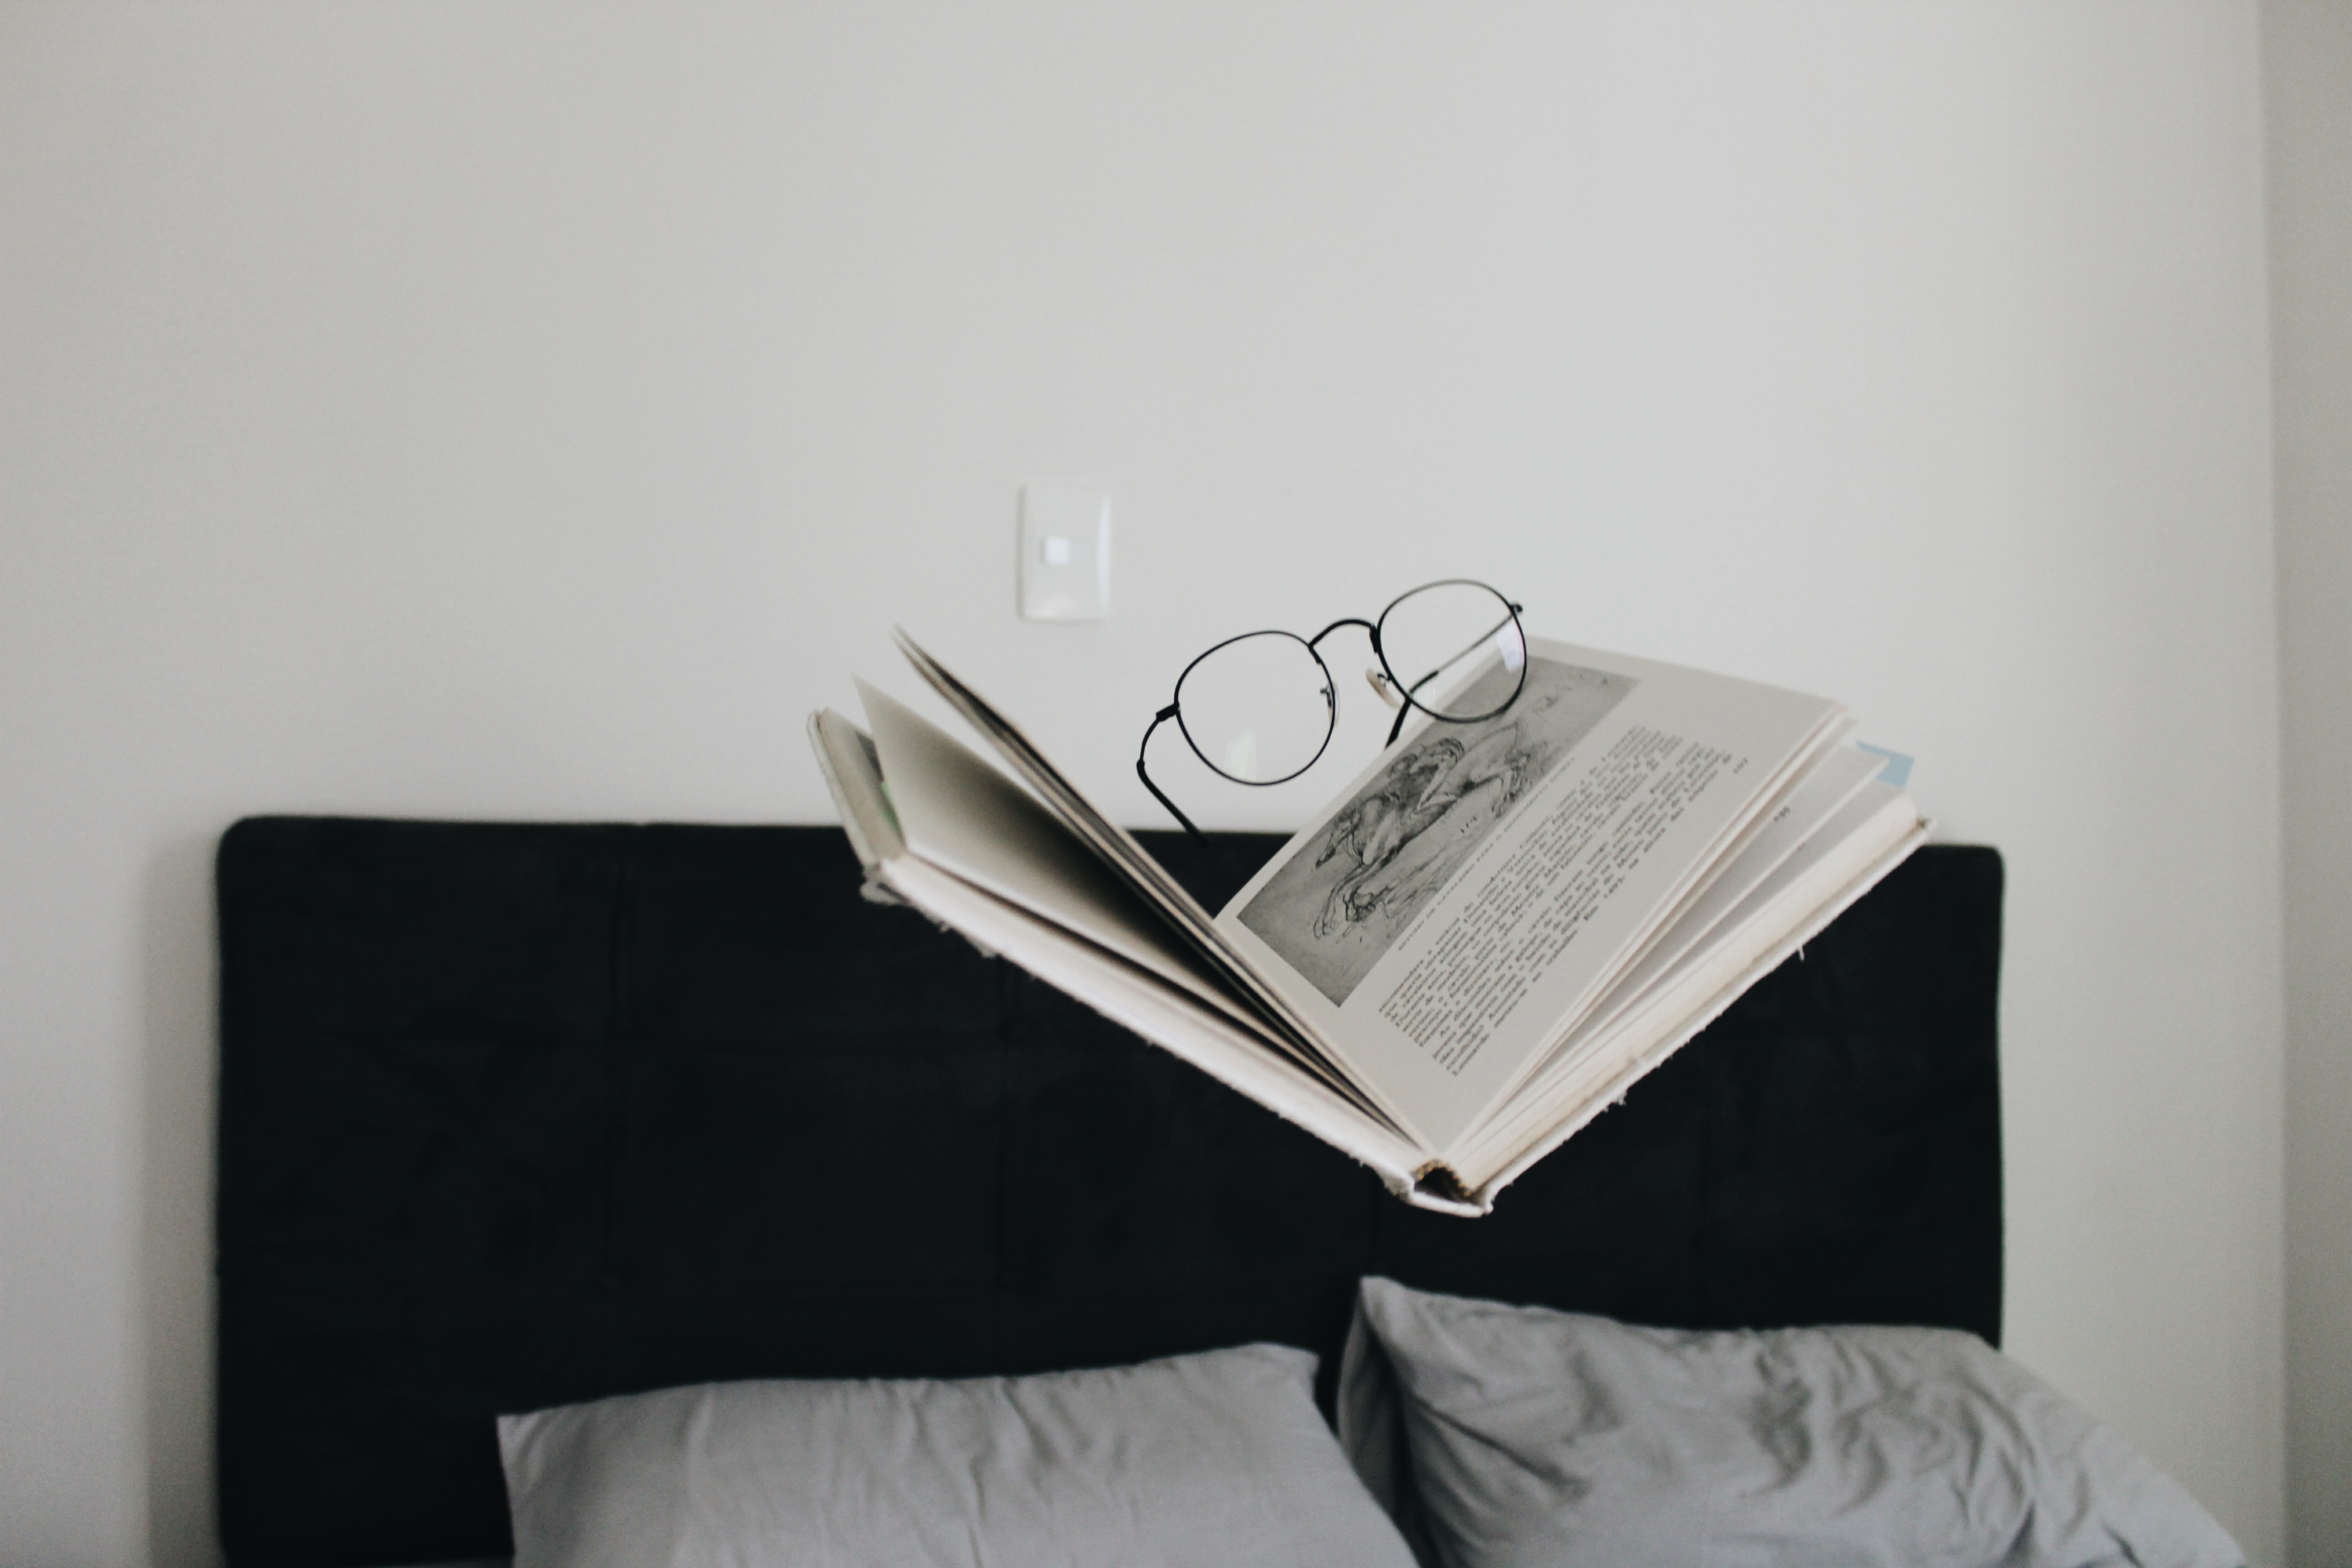 eyeglasses on top of book above bed